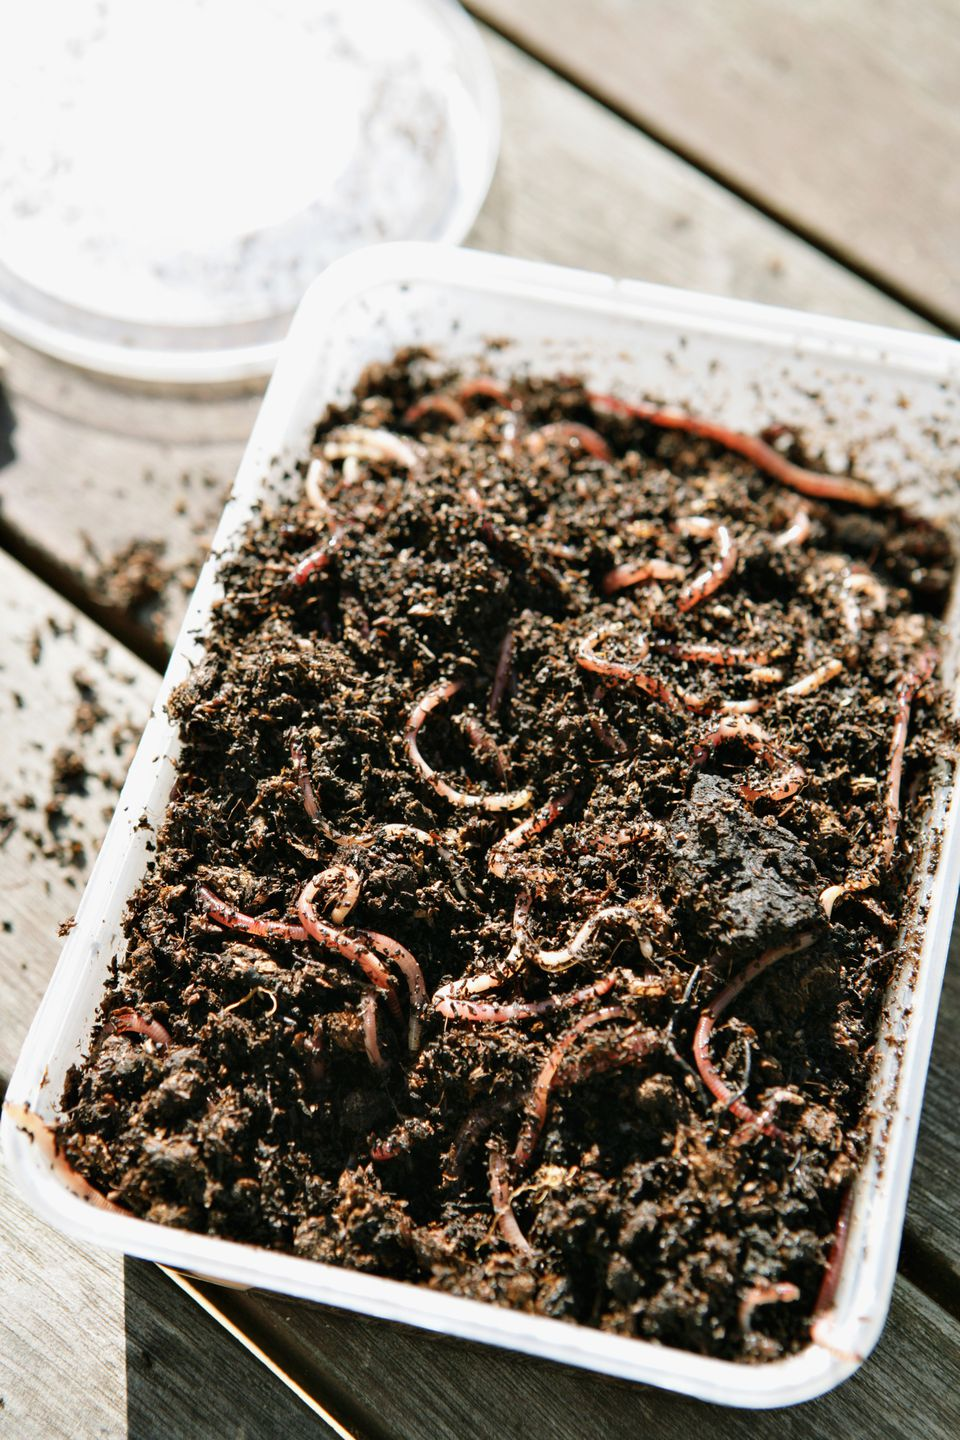 Vermicomposting- worms